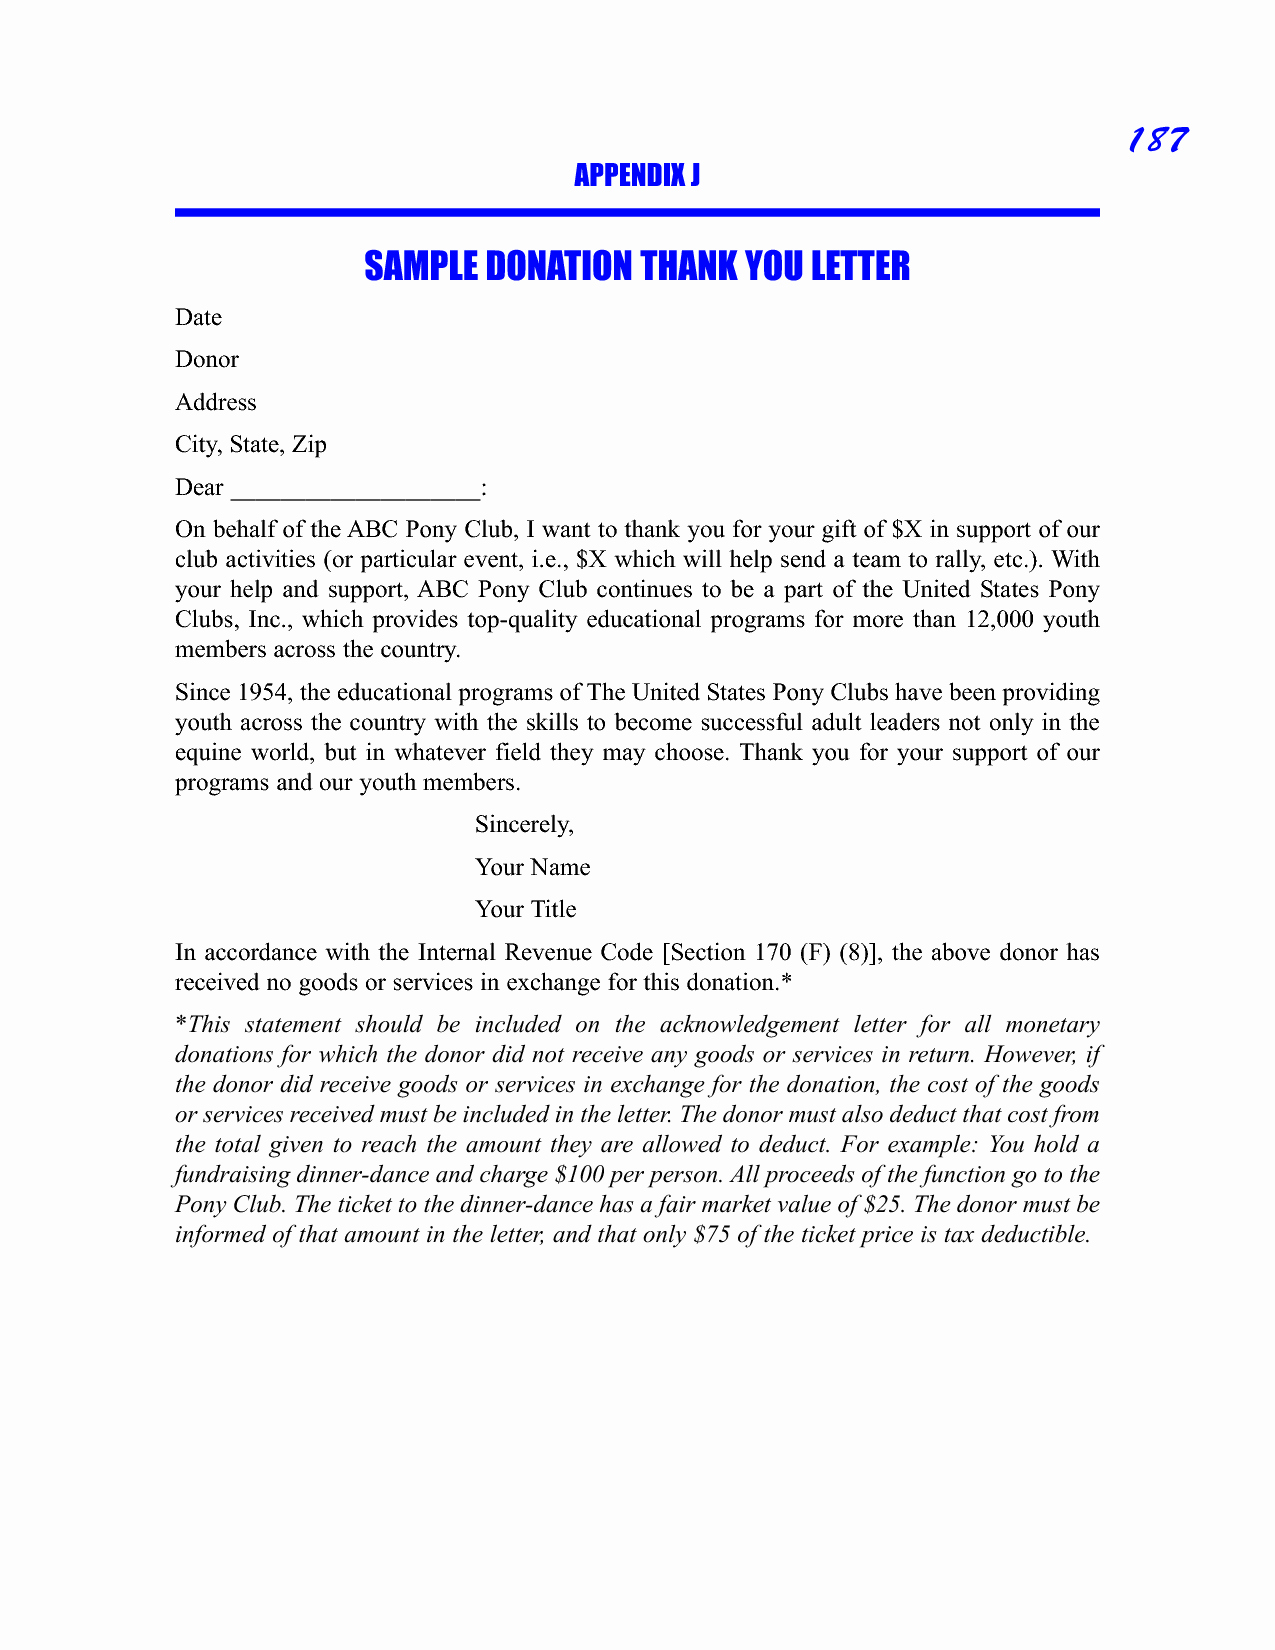 Sample Thank You Letter for Donation